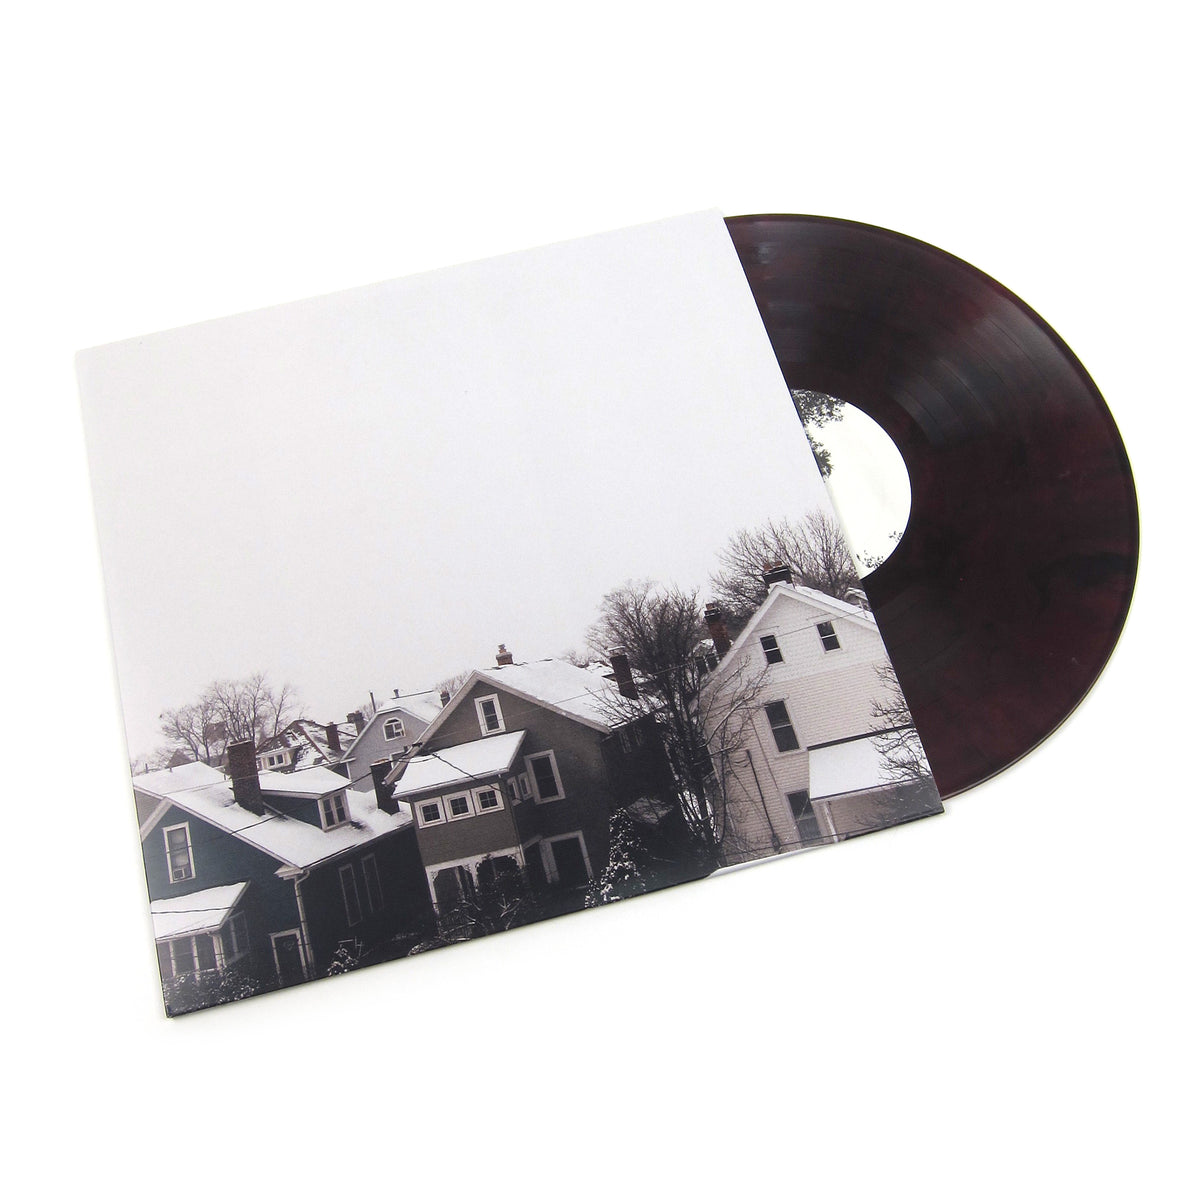 Planning For Burial: Below The House (Colored Vinyl) Vinyl LP